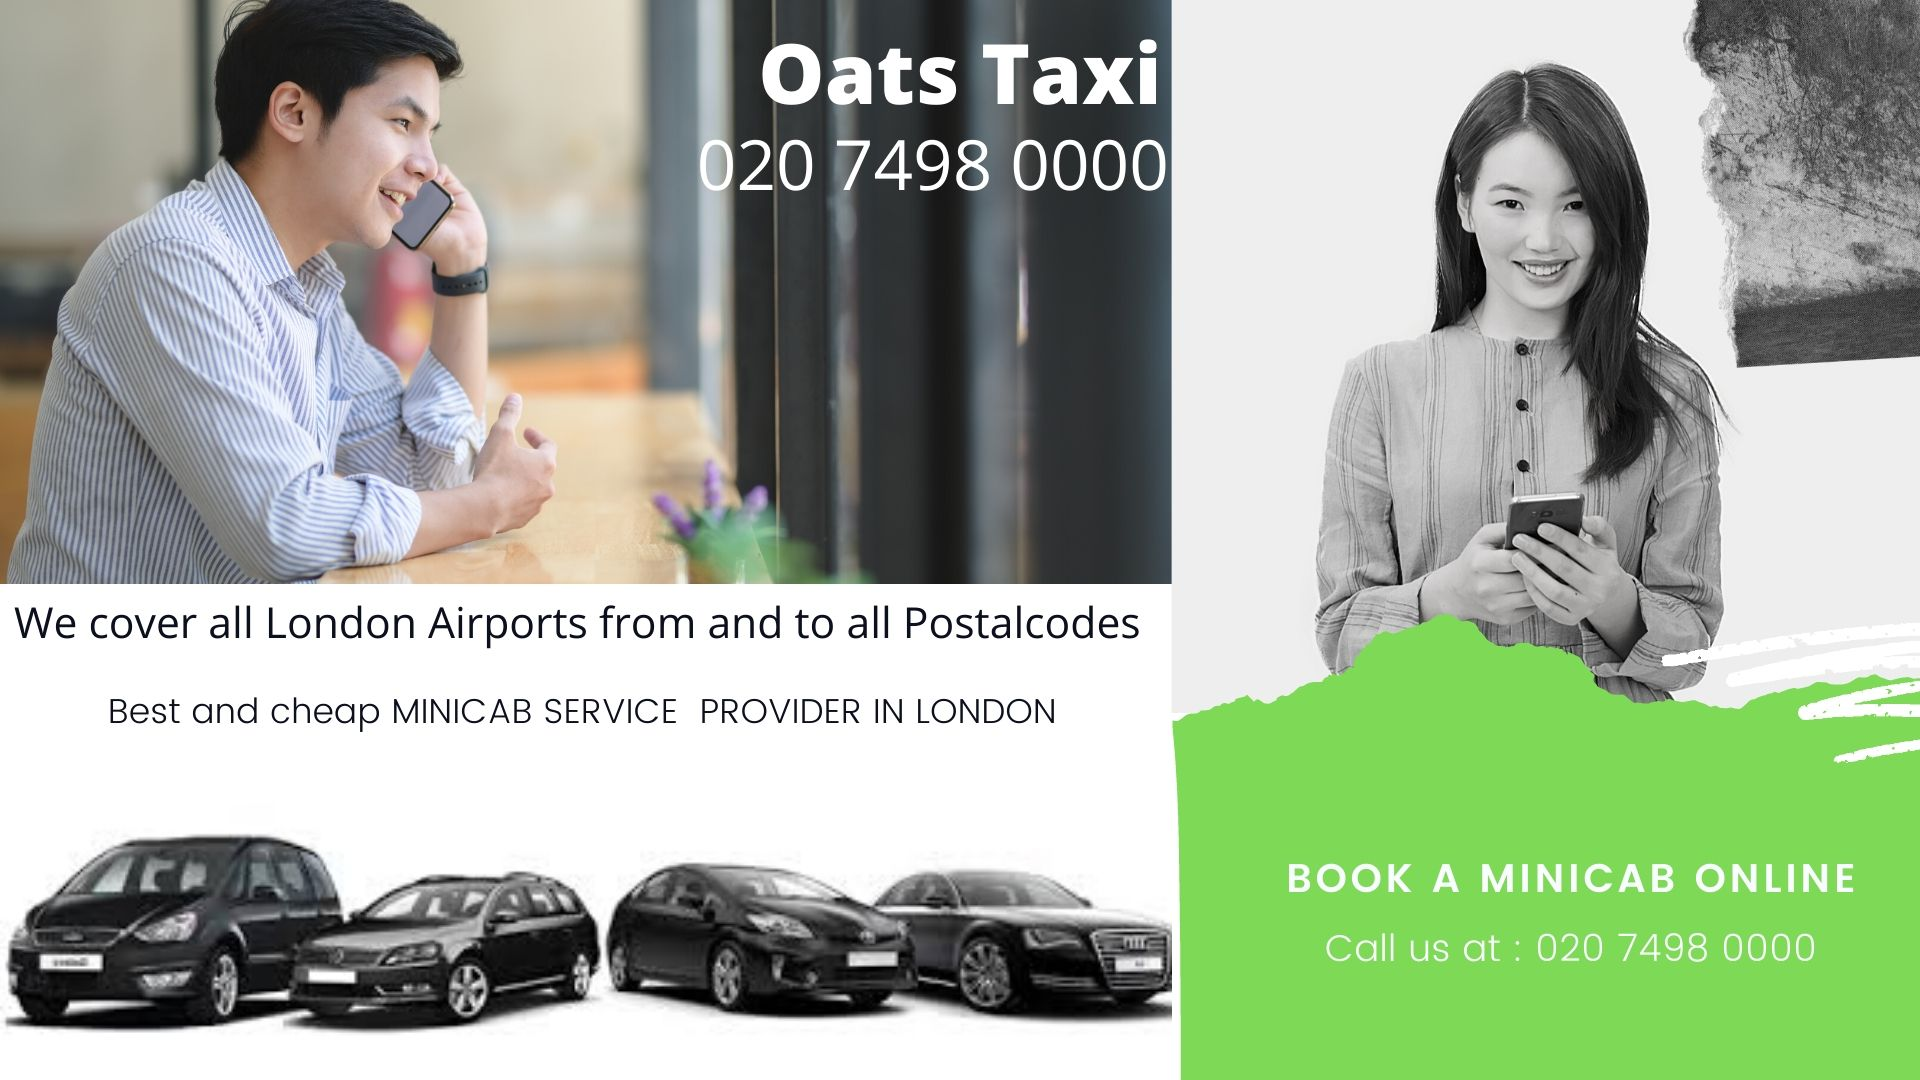 Nearest Taxi Office in Kensington | Gatwick Airport | Call now : 02074980000